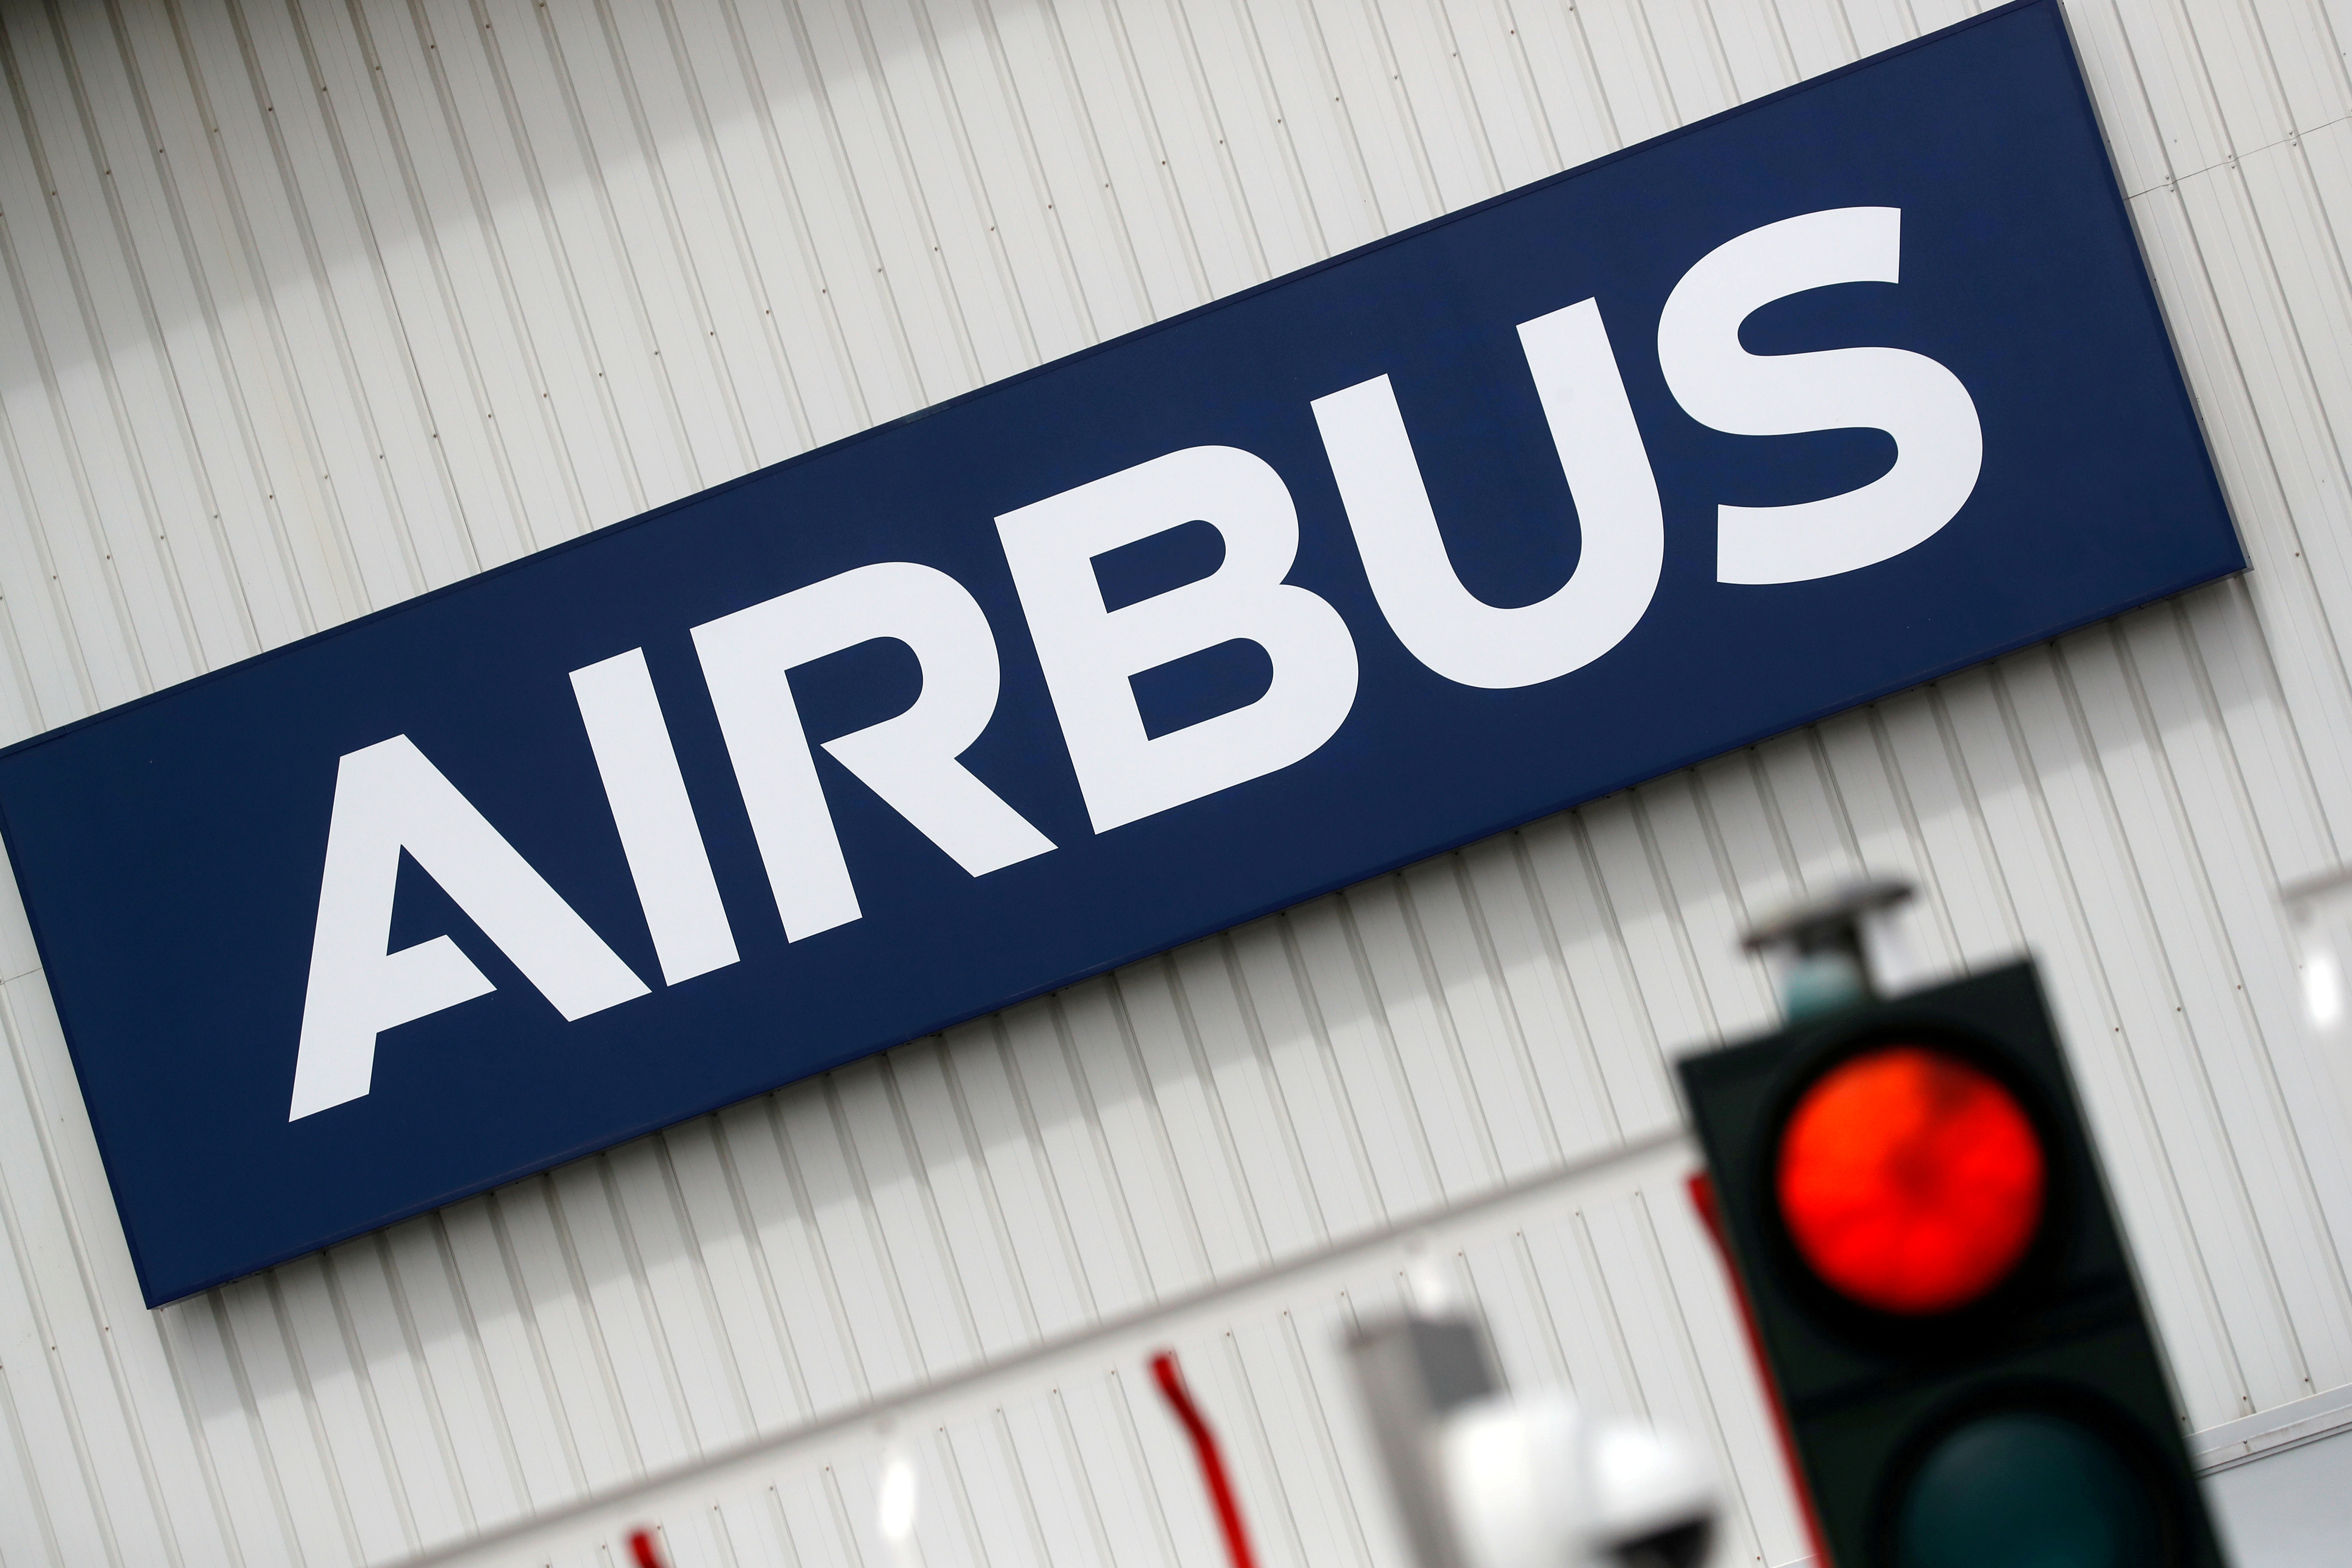 The logo of Airbus is pictured at the entrance of the Airbus facility in Bouguenais, near Nantes, France, July 2, 2020. REUTERS/Stephane Mahe/File Photo